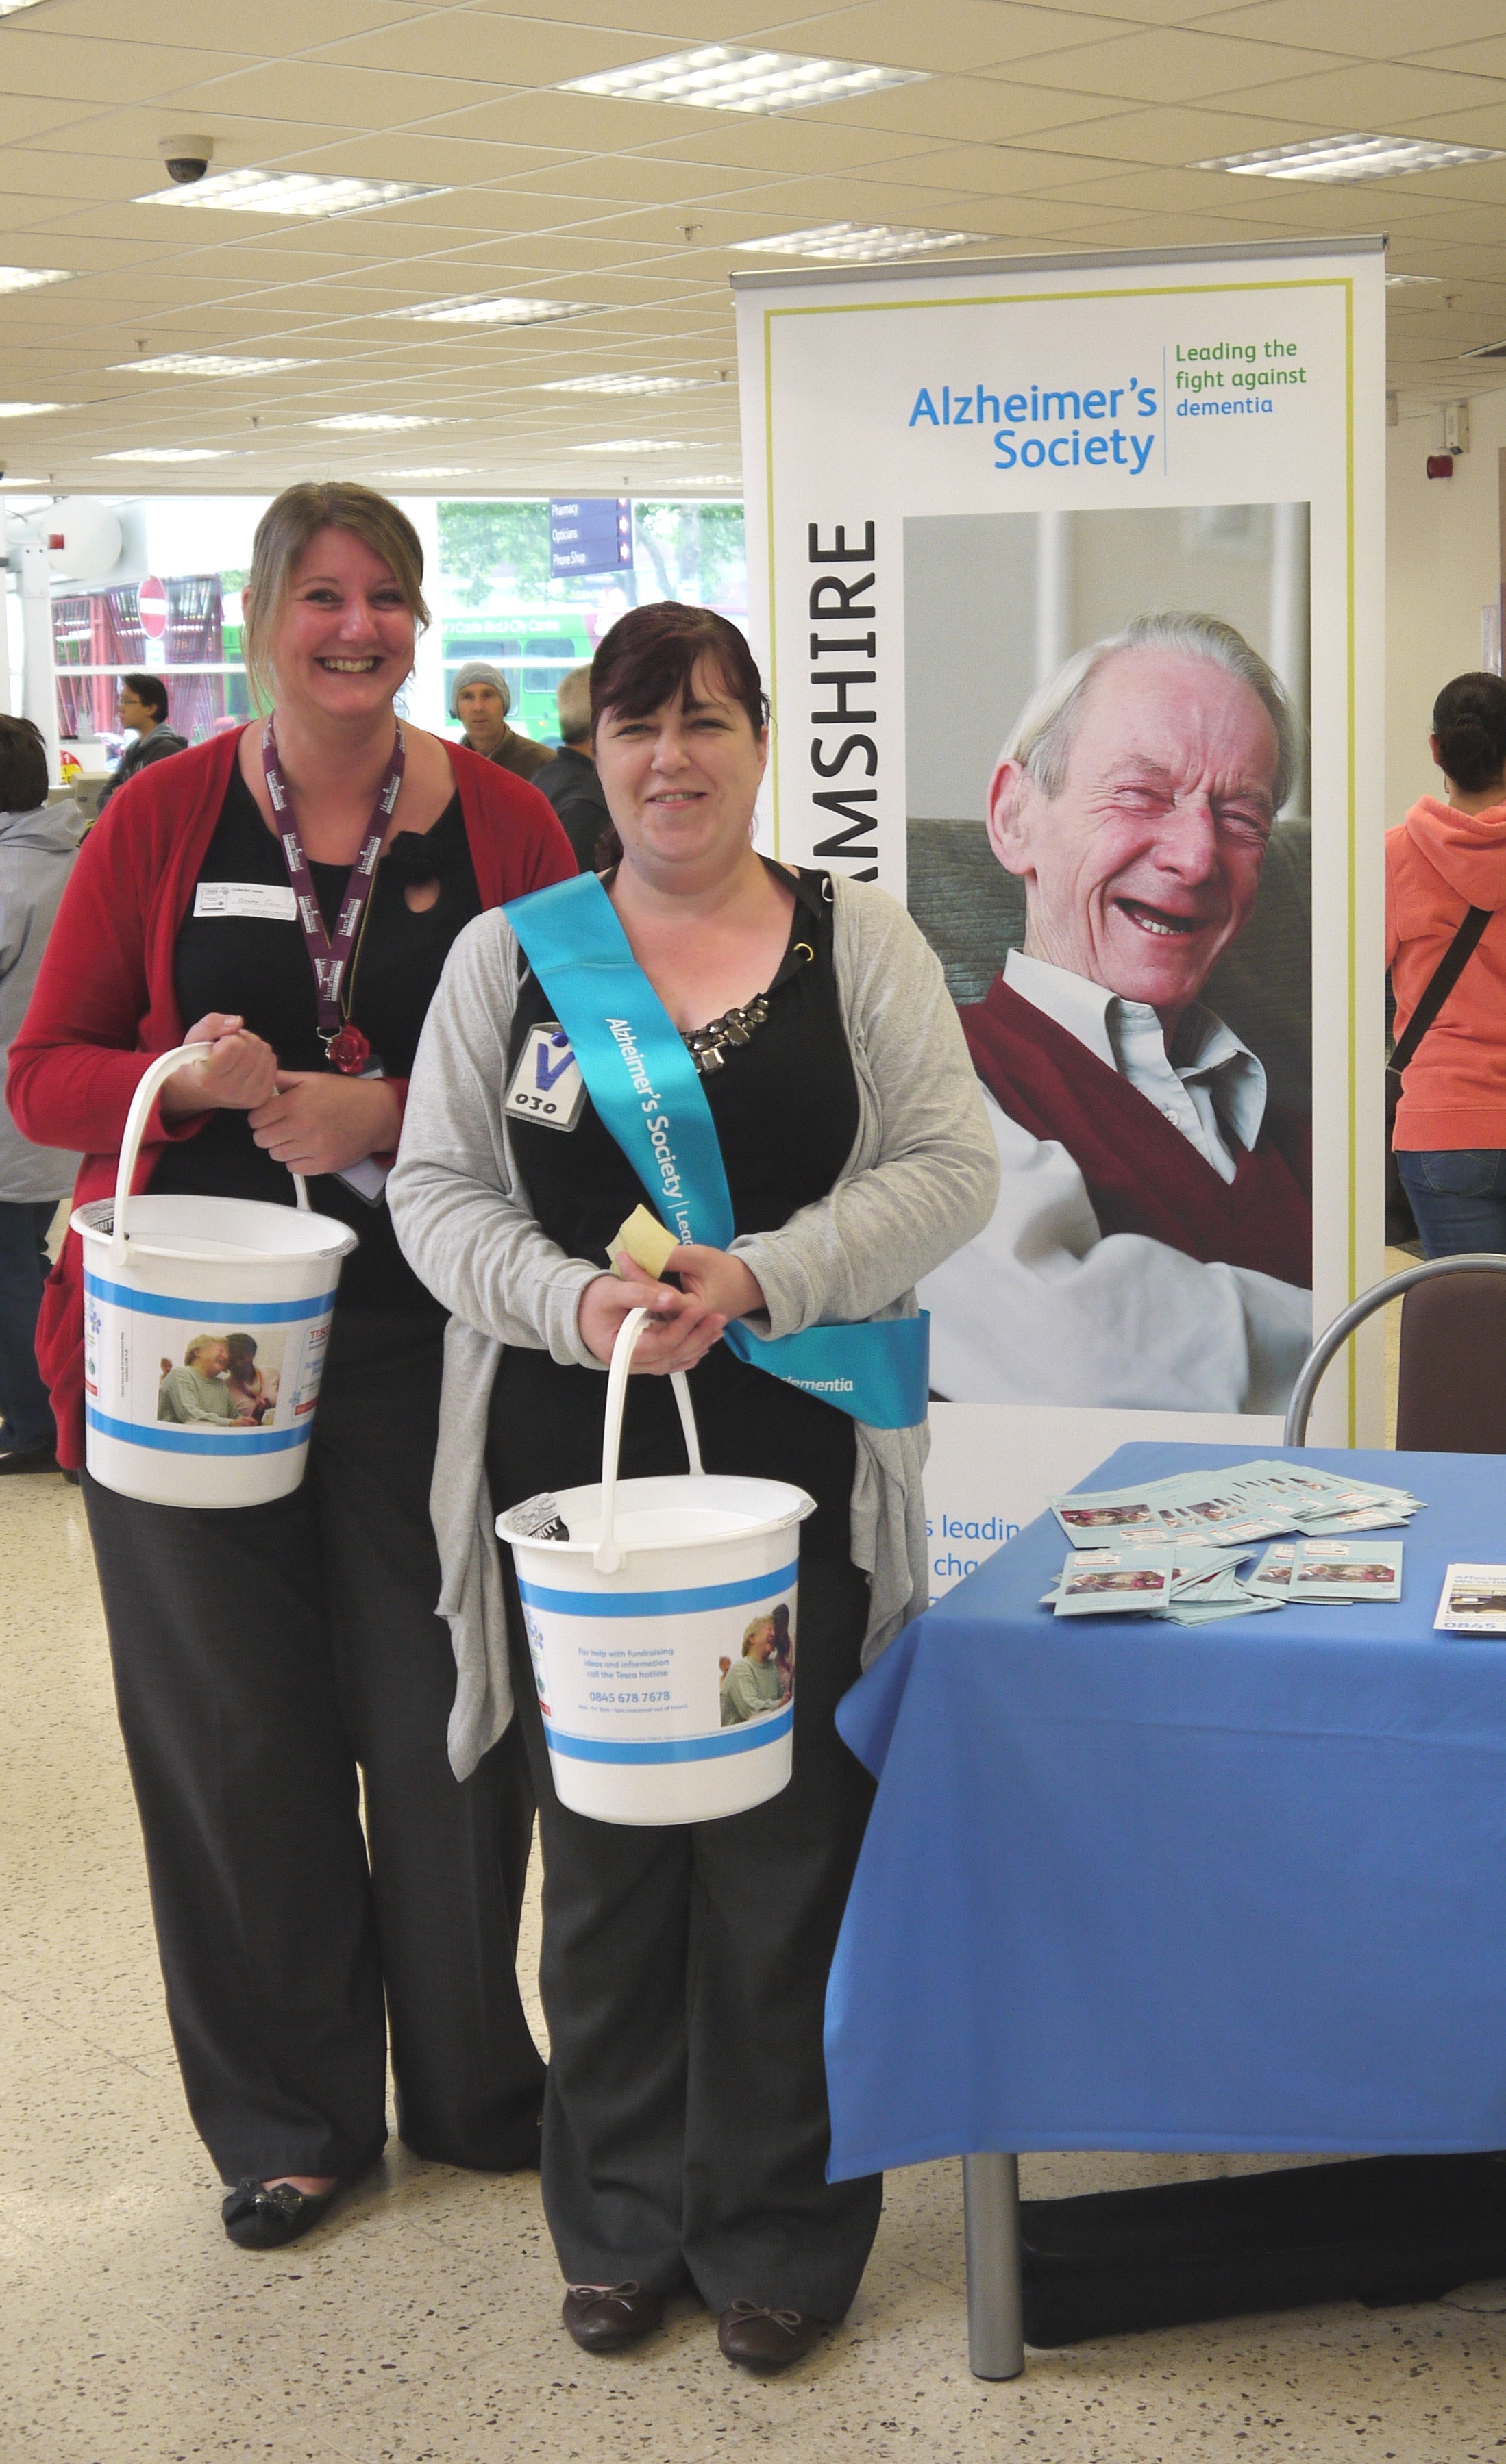 Home Instead Nottingham manager Sarah Gell next to community liaison officer Becky Houghton collecting funds at Tesco supermarket